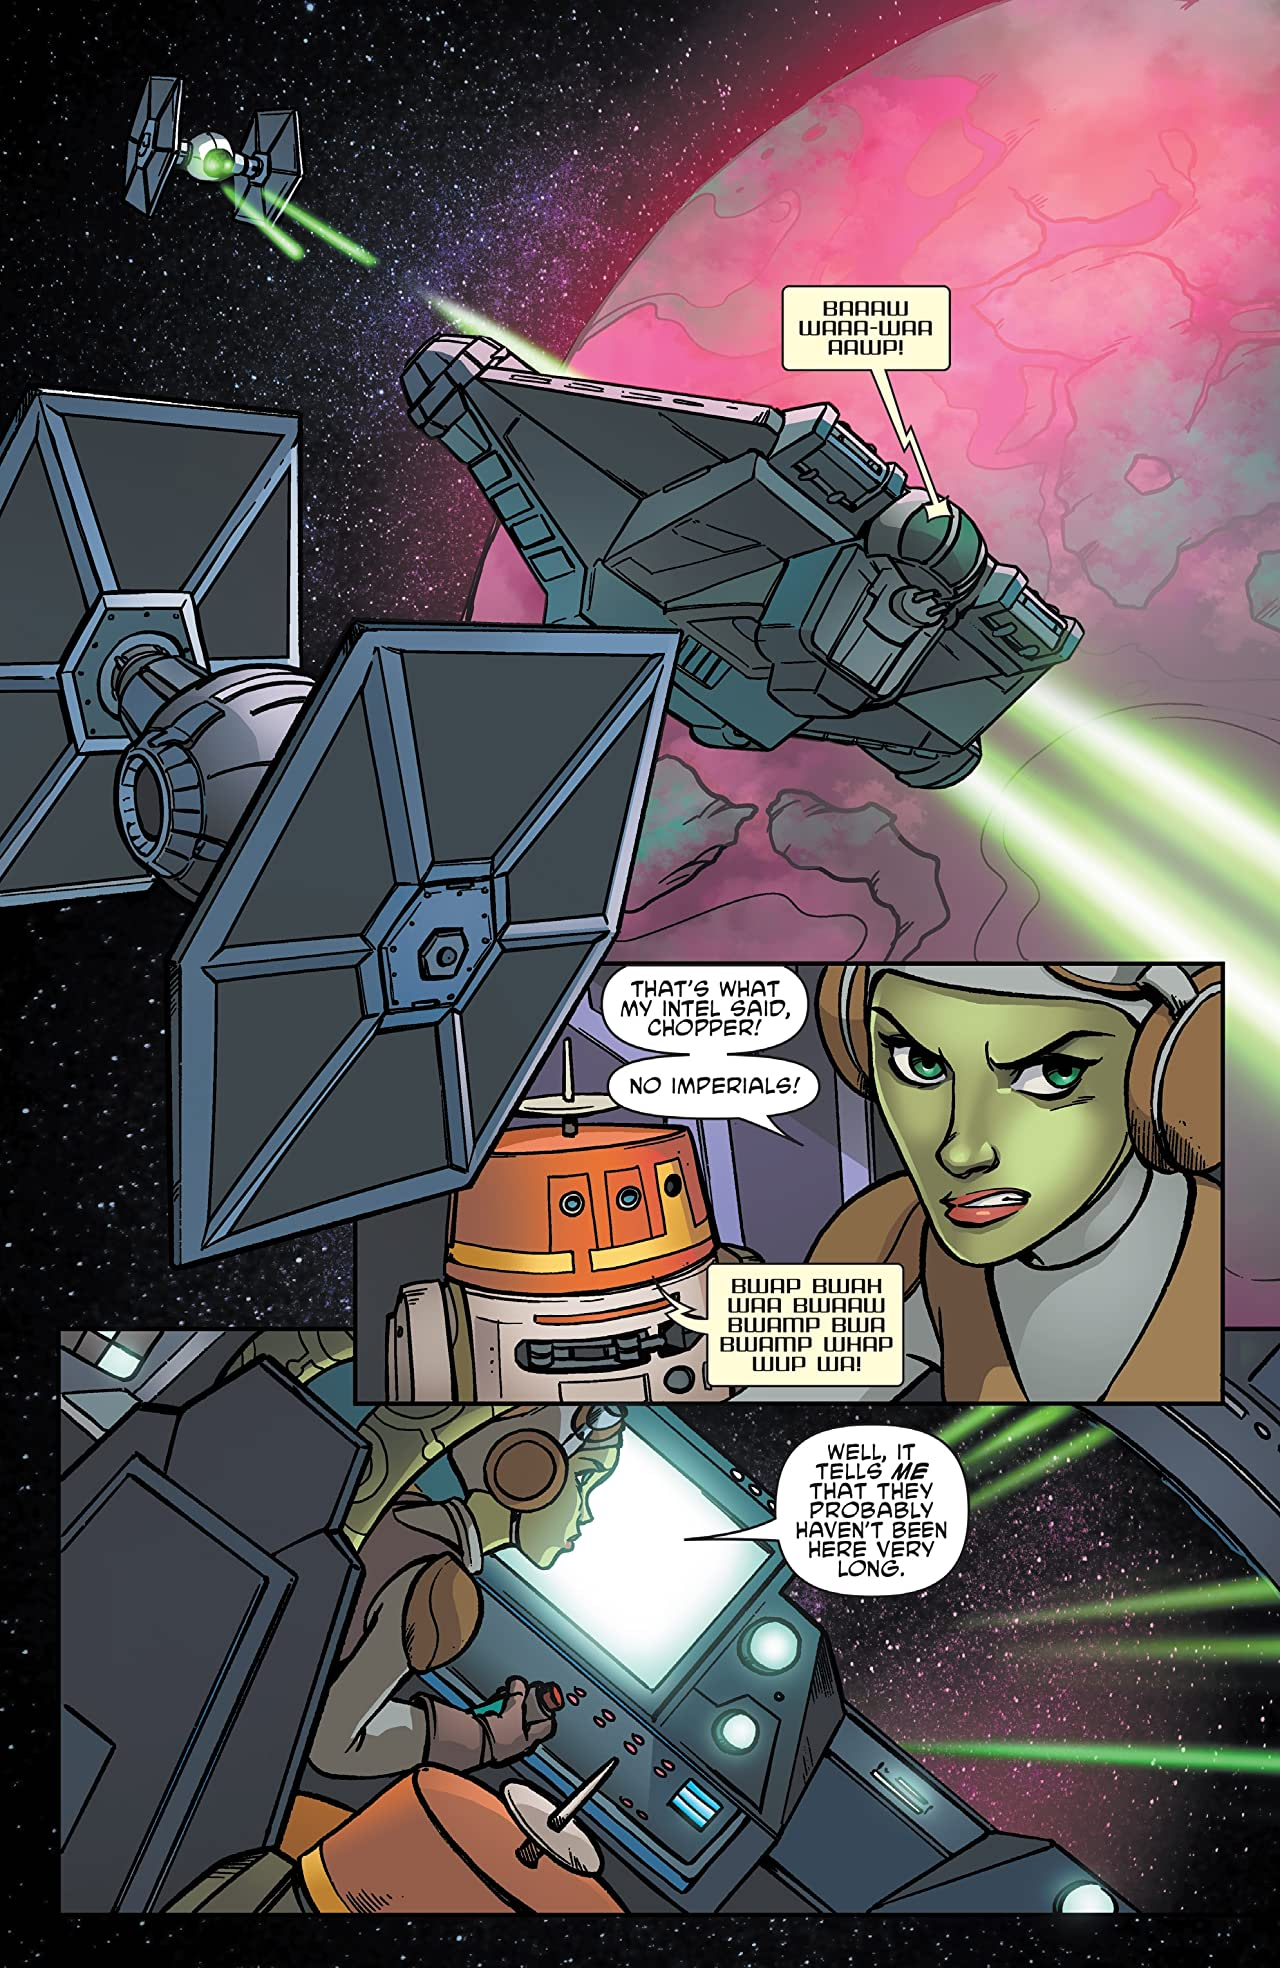 Star Wars Adventures: Forces of Destiny—Hera